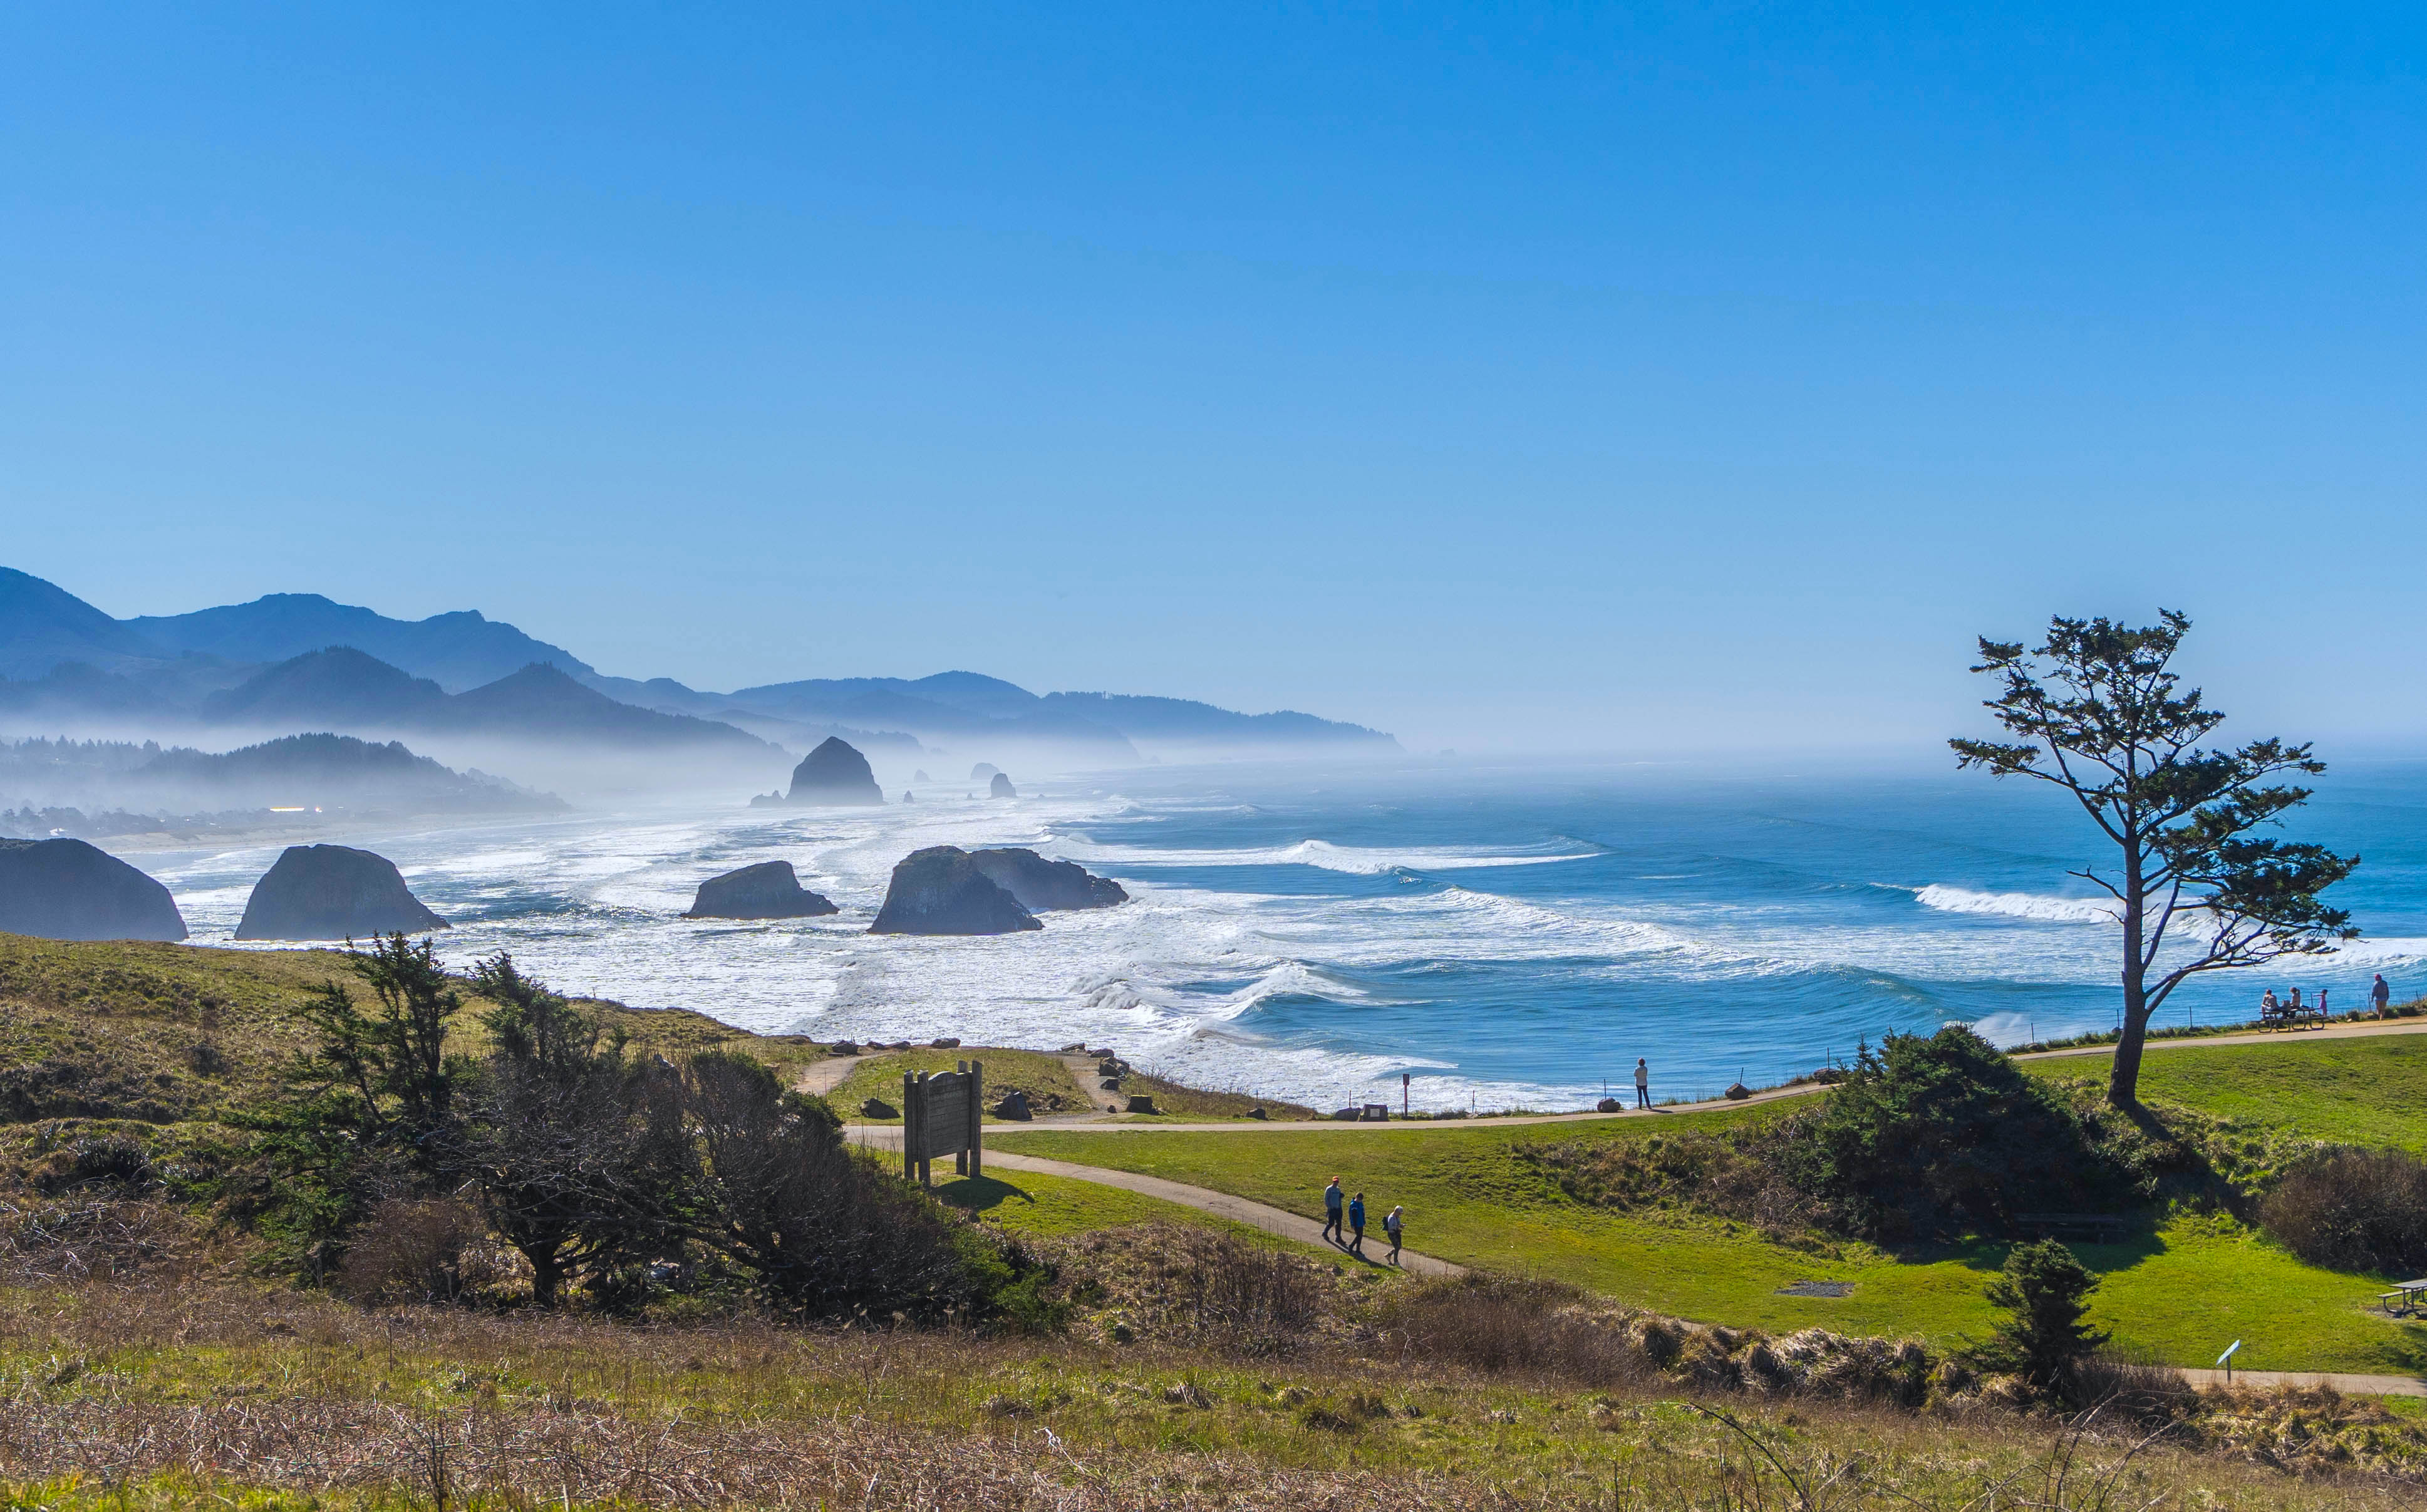 Oregon coast as seen from Ecola State Park